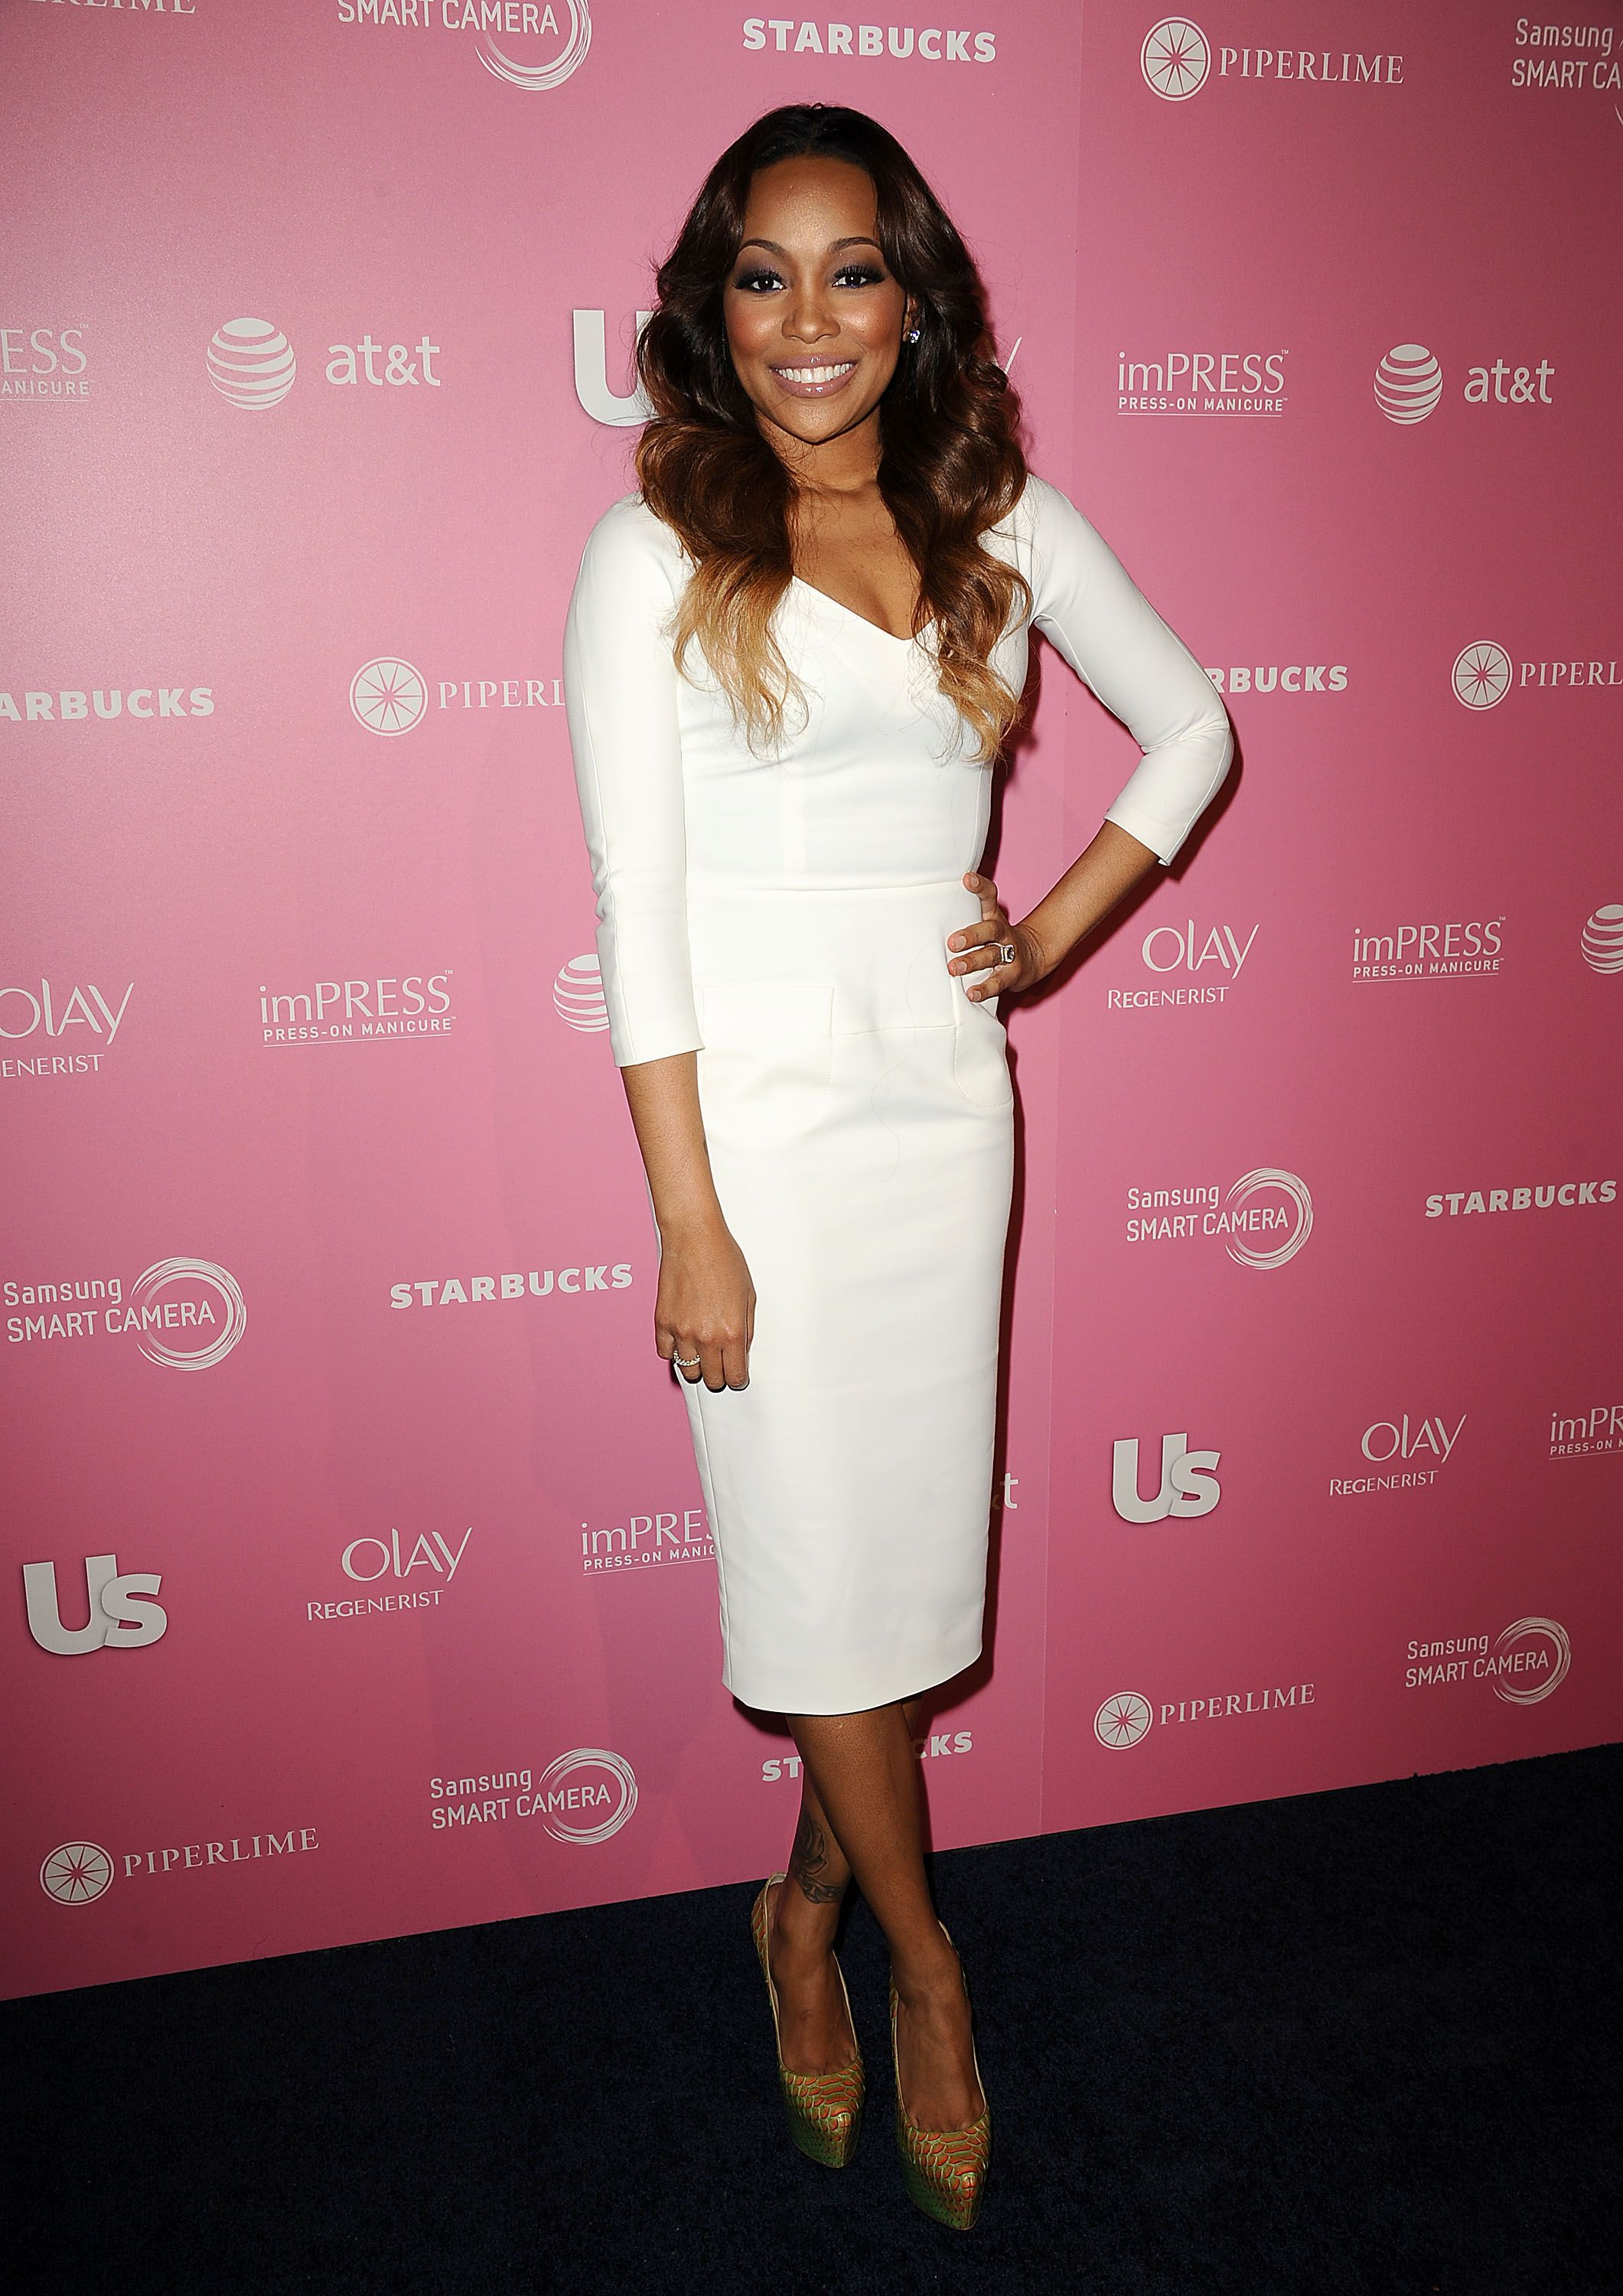 Singer Monica Denise Brown attends Us Weekly's Hot Hollywood 2012 style issue event at Greystone Manor Supperclub on April 18, 2012 in West Hollywood, California. | Photo: Getty Images